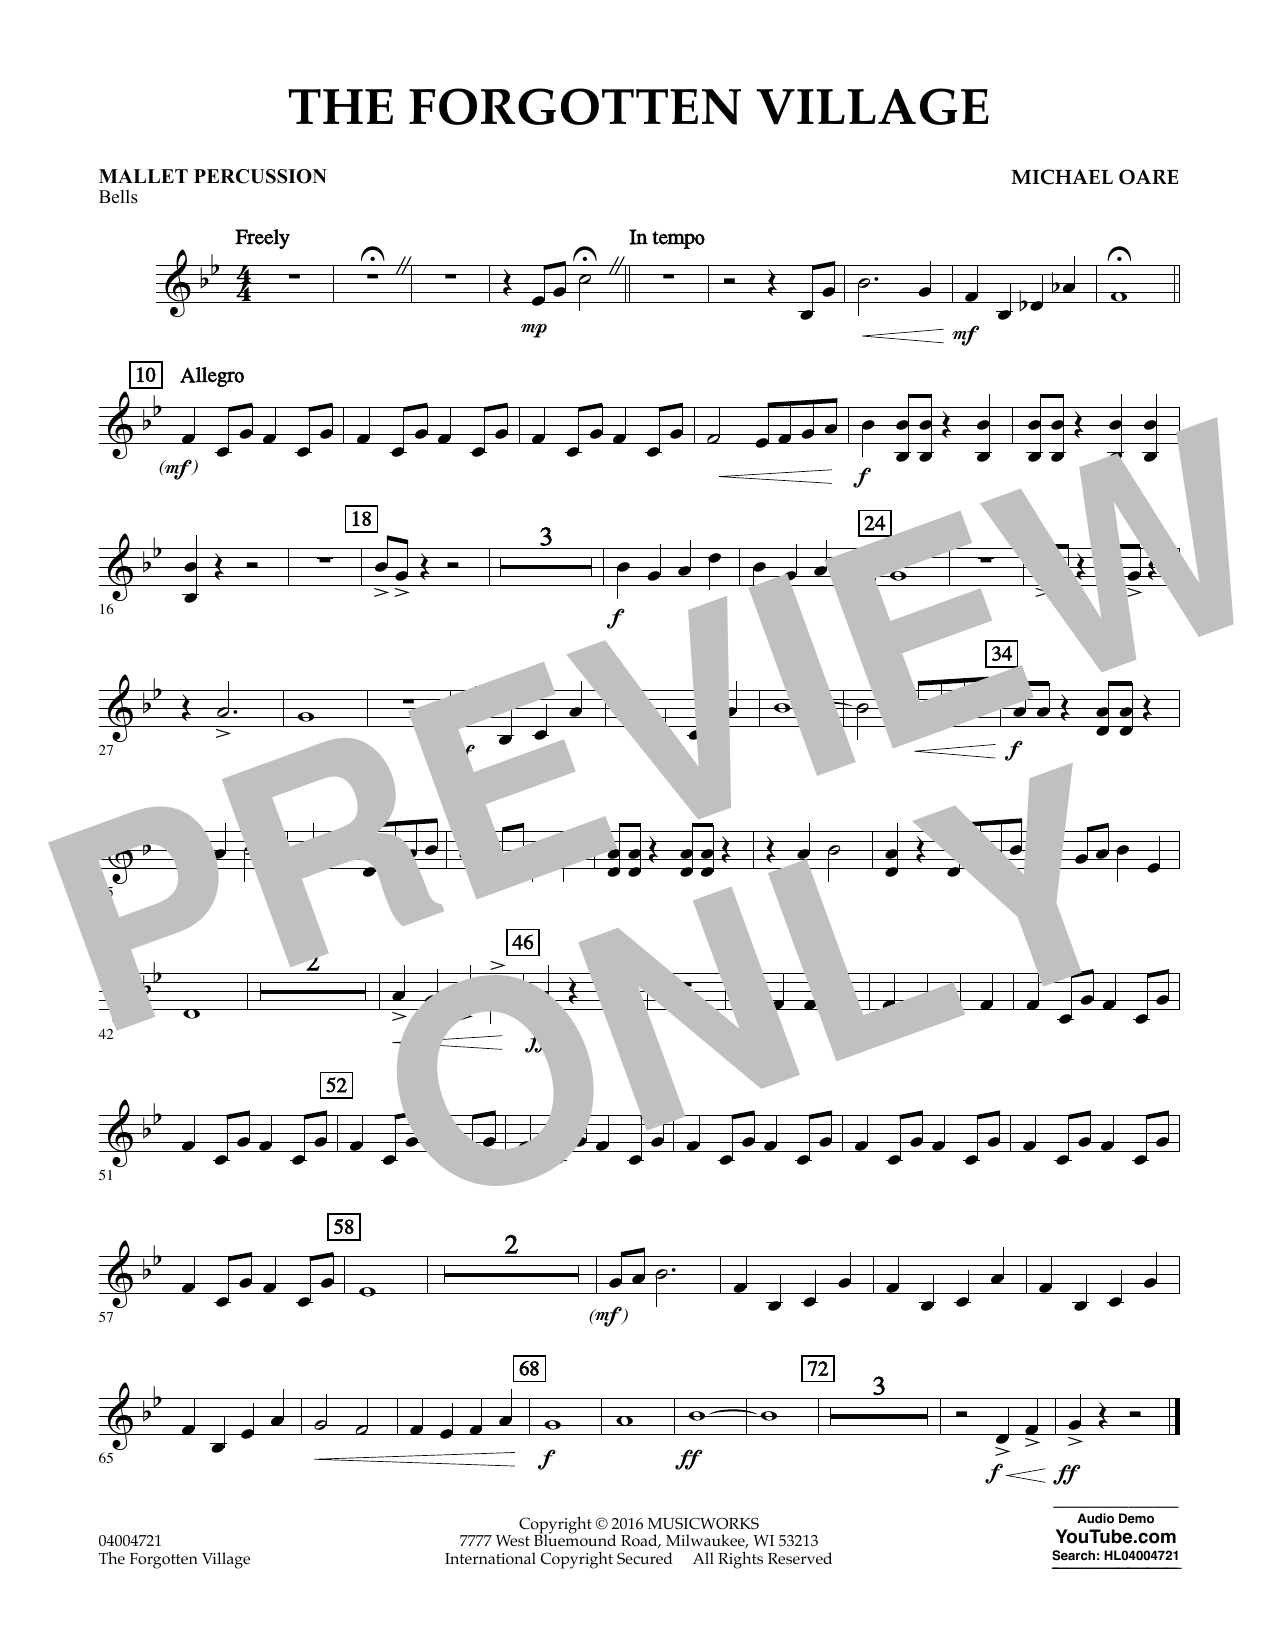 The Forgotten Village - Mallet Percussion (Concert Band)